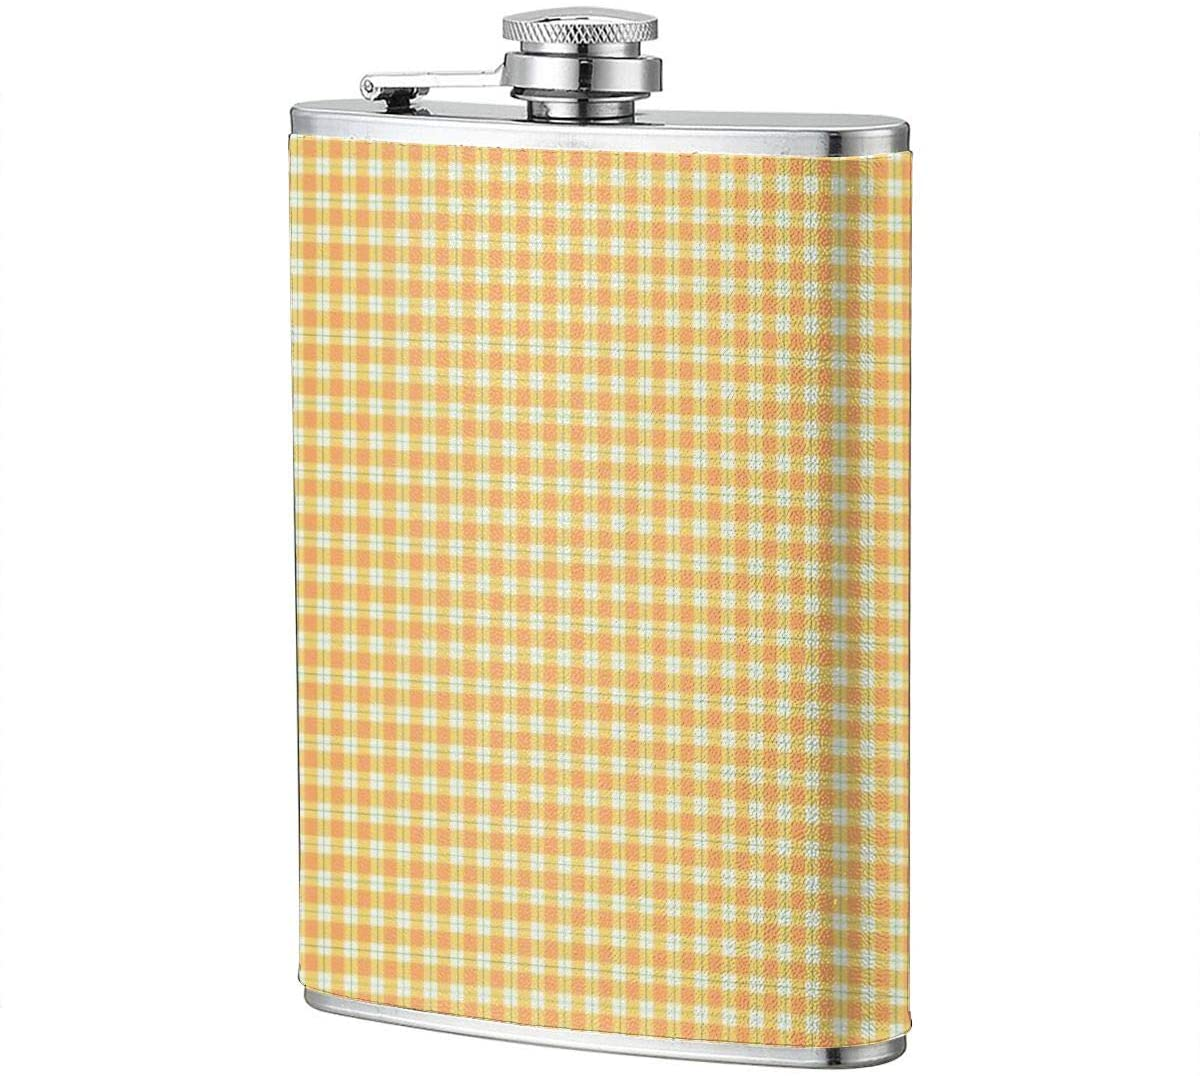 Orange European Plaid Portable 8 Oz Stainless Steel Leak-Proof Hip Flask For Whiskey With Leather Wrap Travel Camping Wine Pot Flagon For Men Women